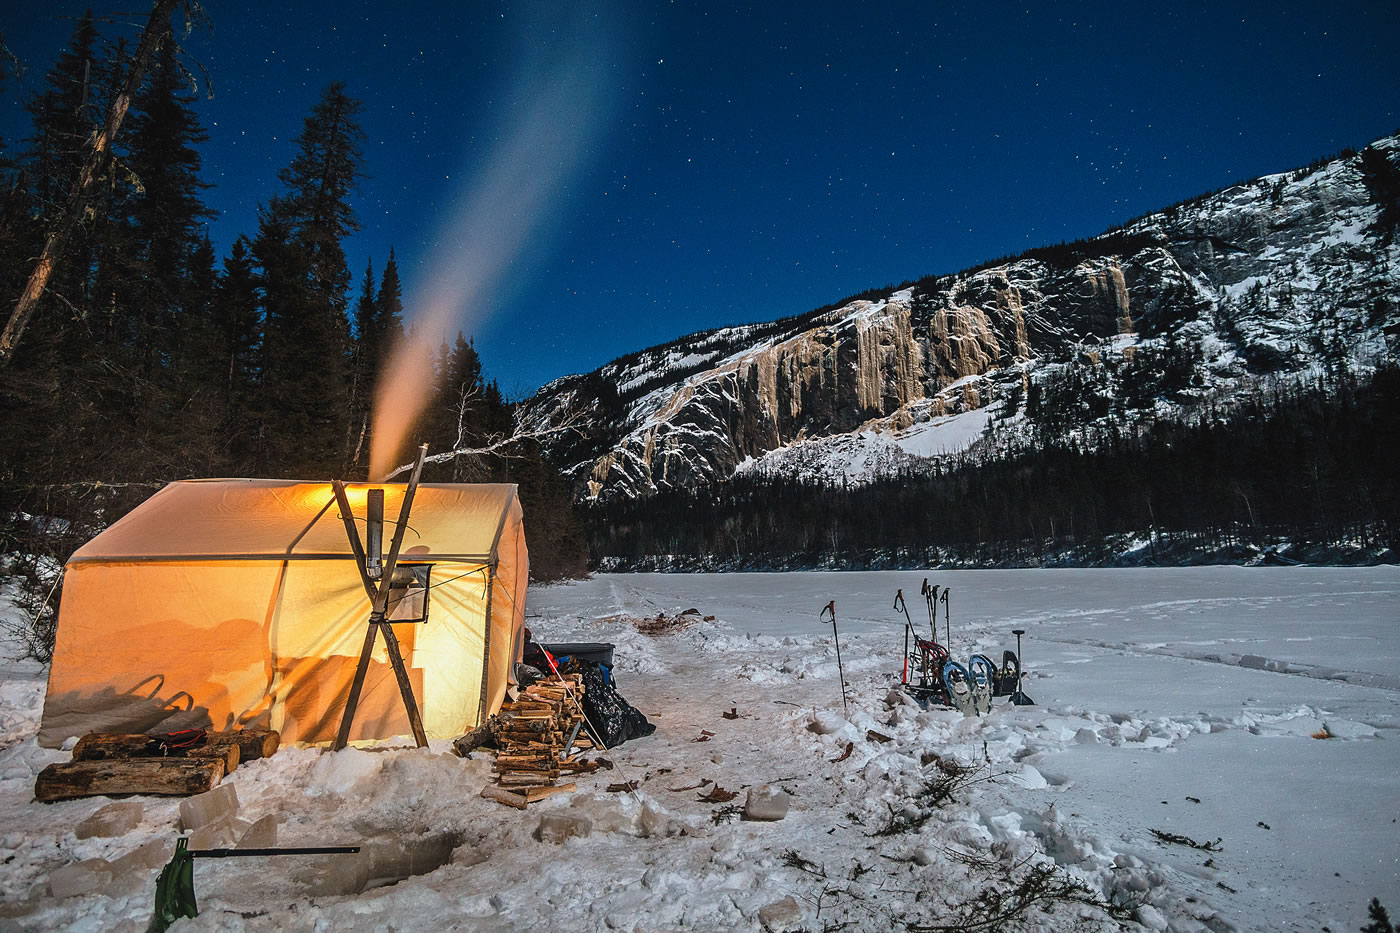 Base camp on the frozen Nipissis River below the M51 cliff, in Nitassinan, the Innu name for this land that overlaps with northeastern Quebec. [Photo] Maarten van Haeren